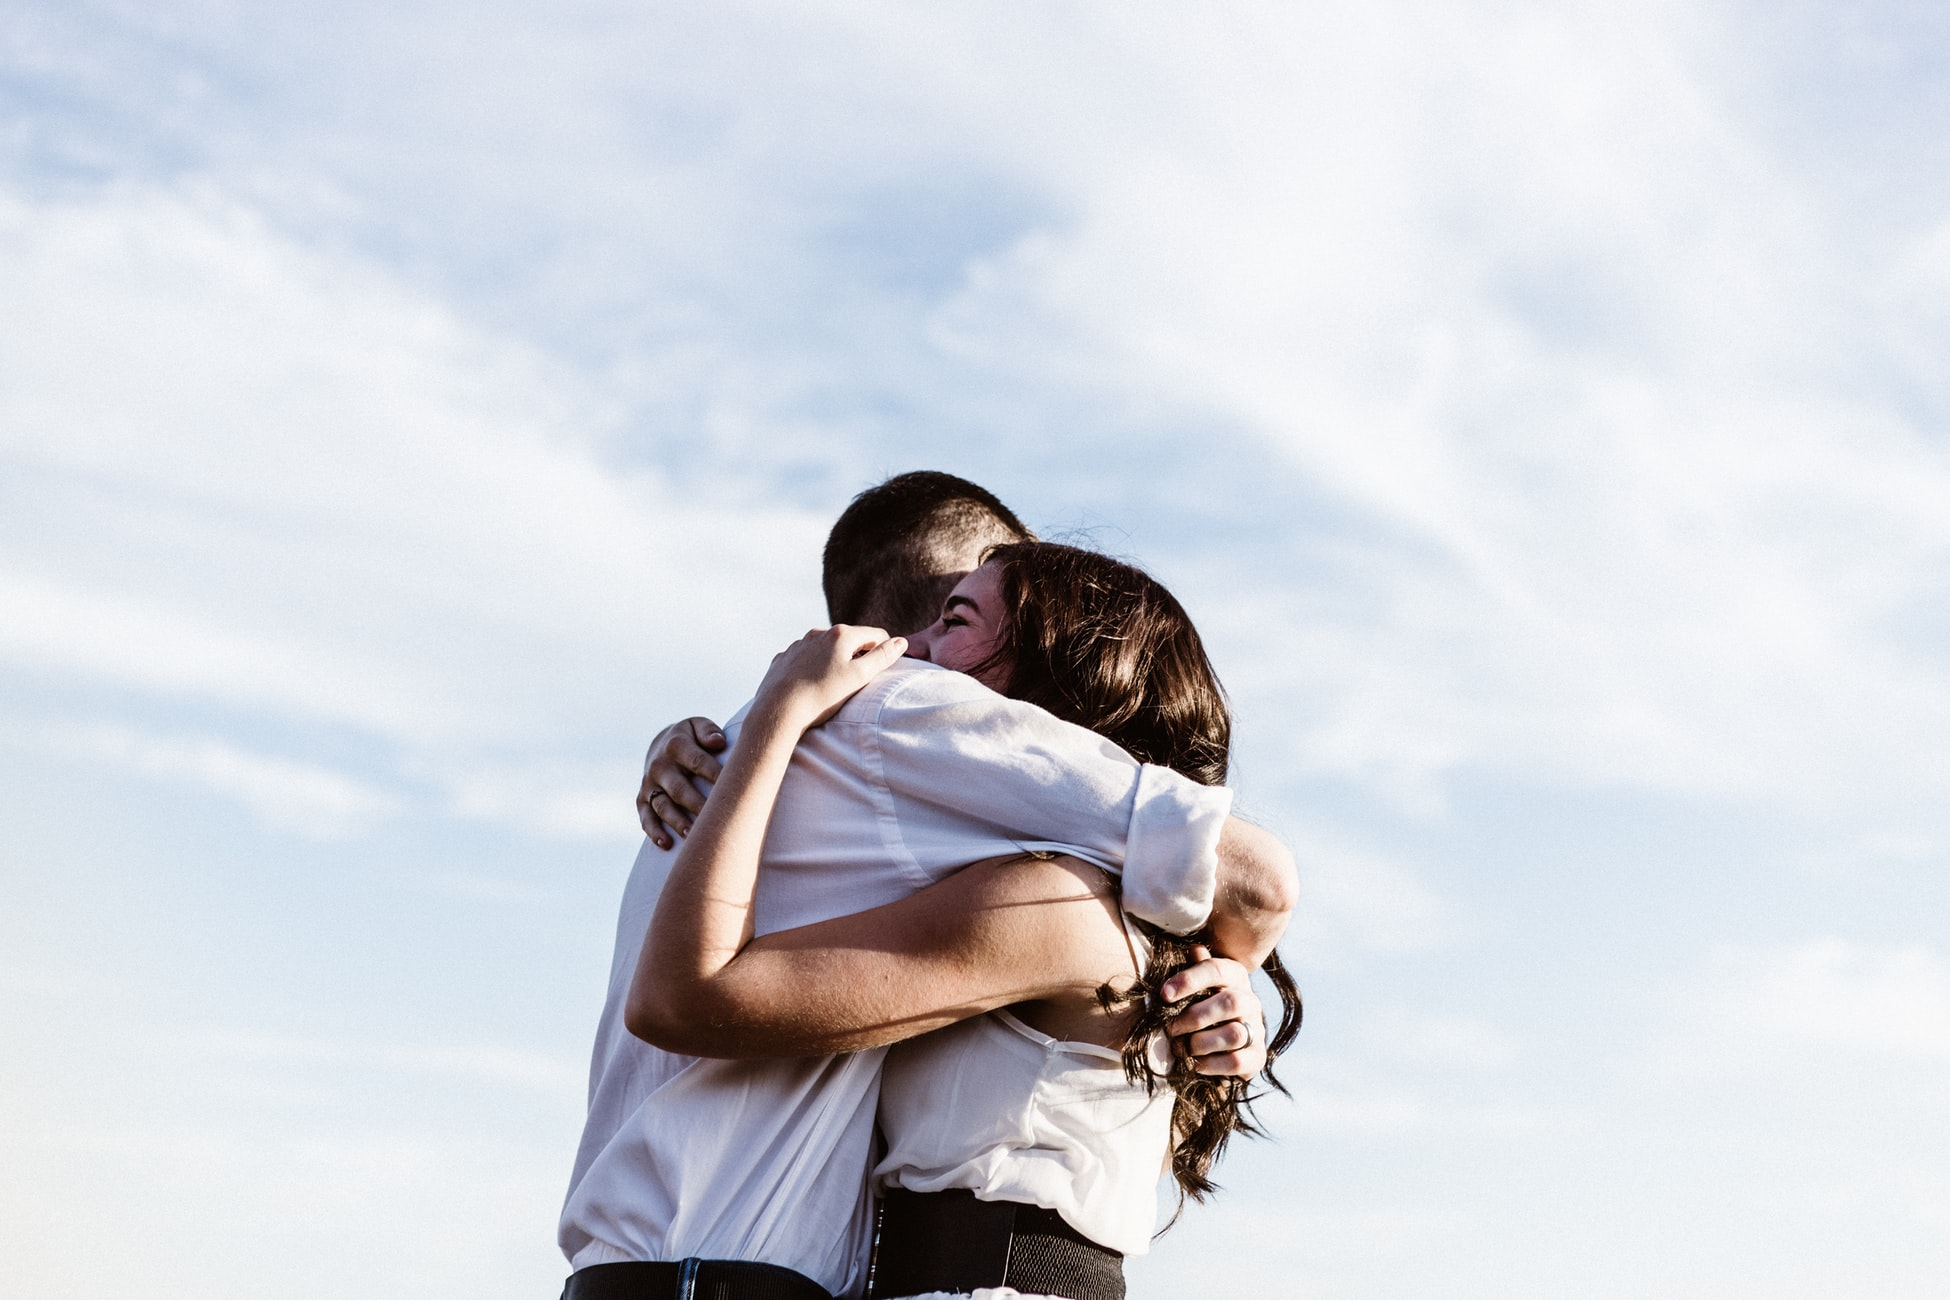 happy couple in a tight embrace against a big open blue sky